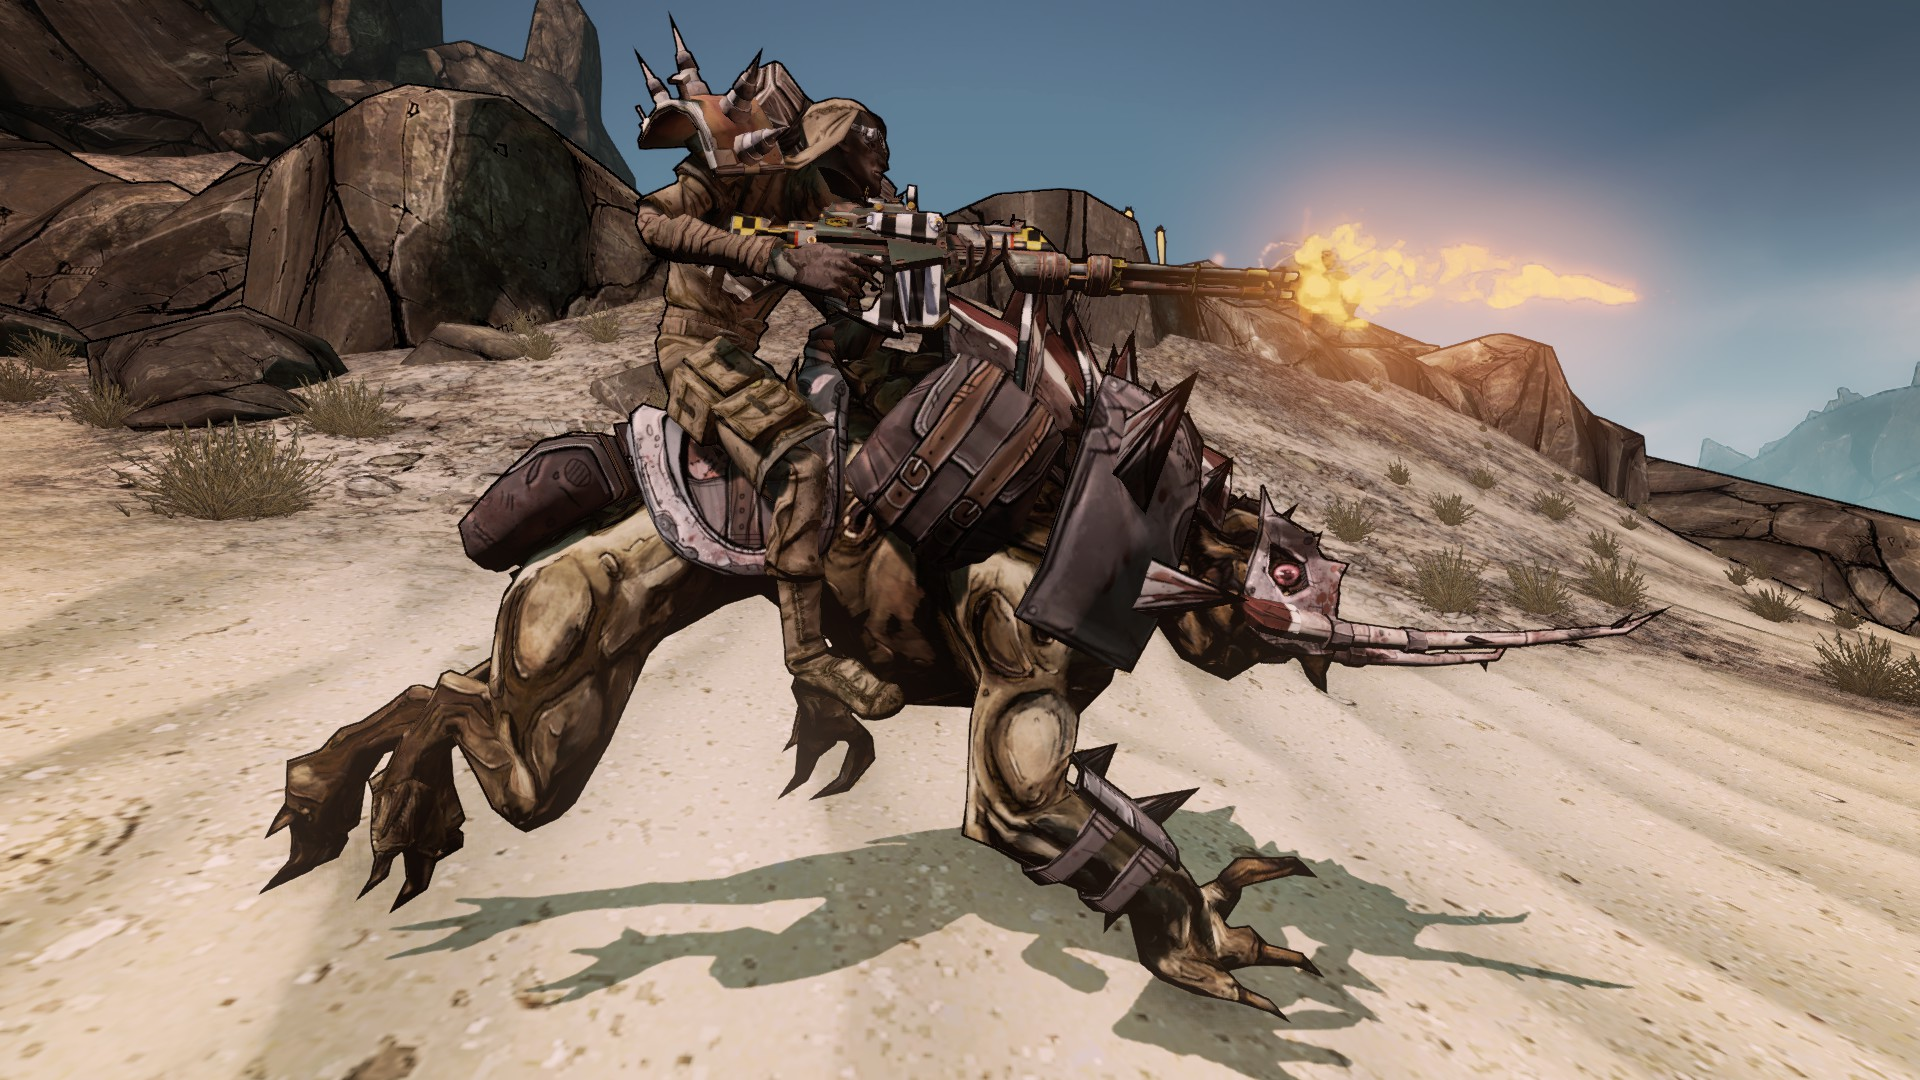 Armored Skag   Borderlands Wiki   Fandom powered by Wikia Borderlands Characters Brick